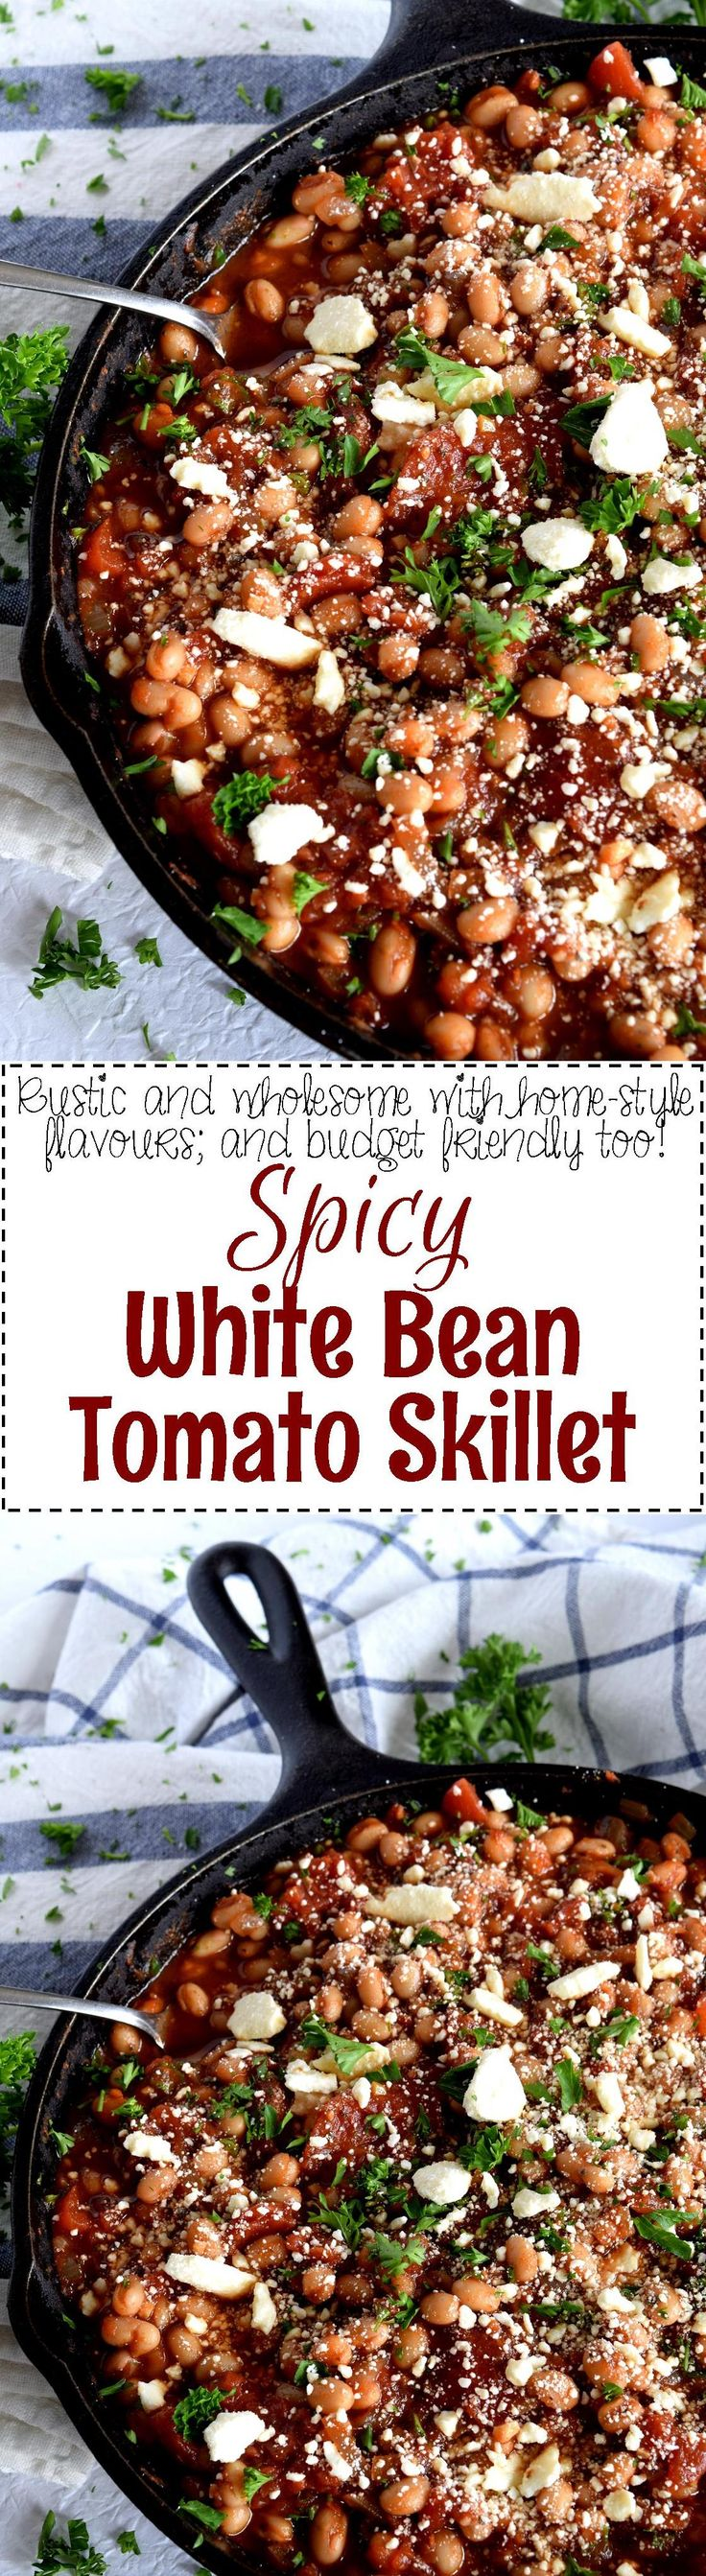 Spicy White Bean Tomato Skillet - Spicy White Bean Tomato Skillet is wholesome and delicious; packed with great flavour and lots of protein, this dish comes together easily, quickly, and inexpensively.  Serve with good crusty bread for a great dinnertime option.